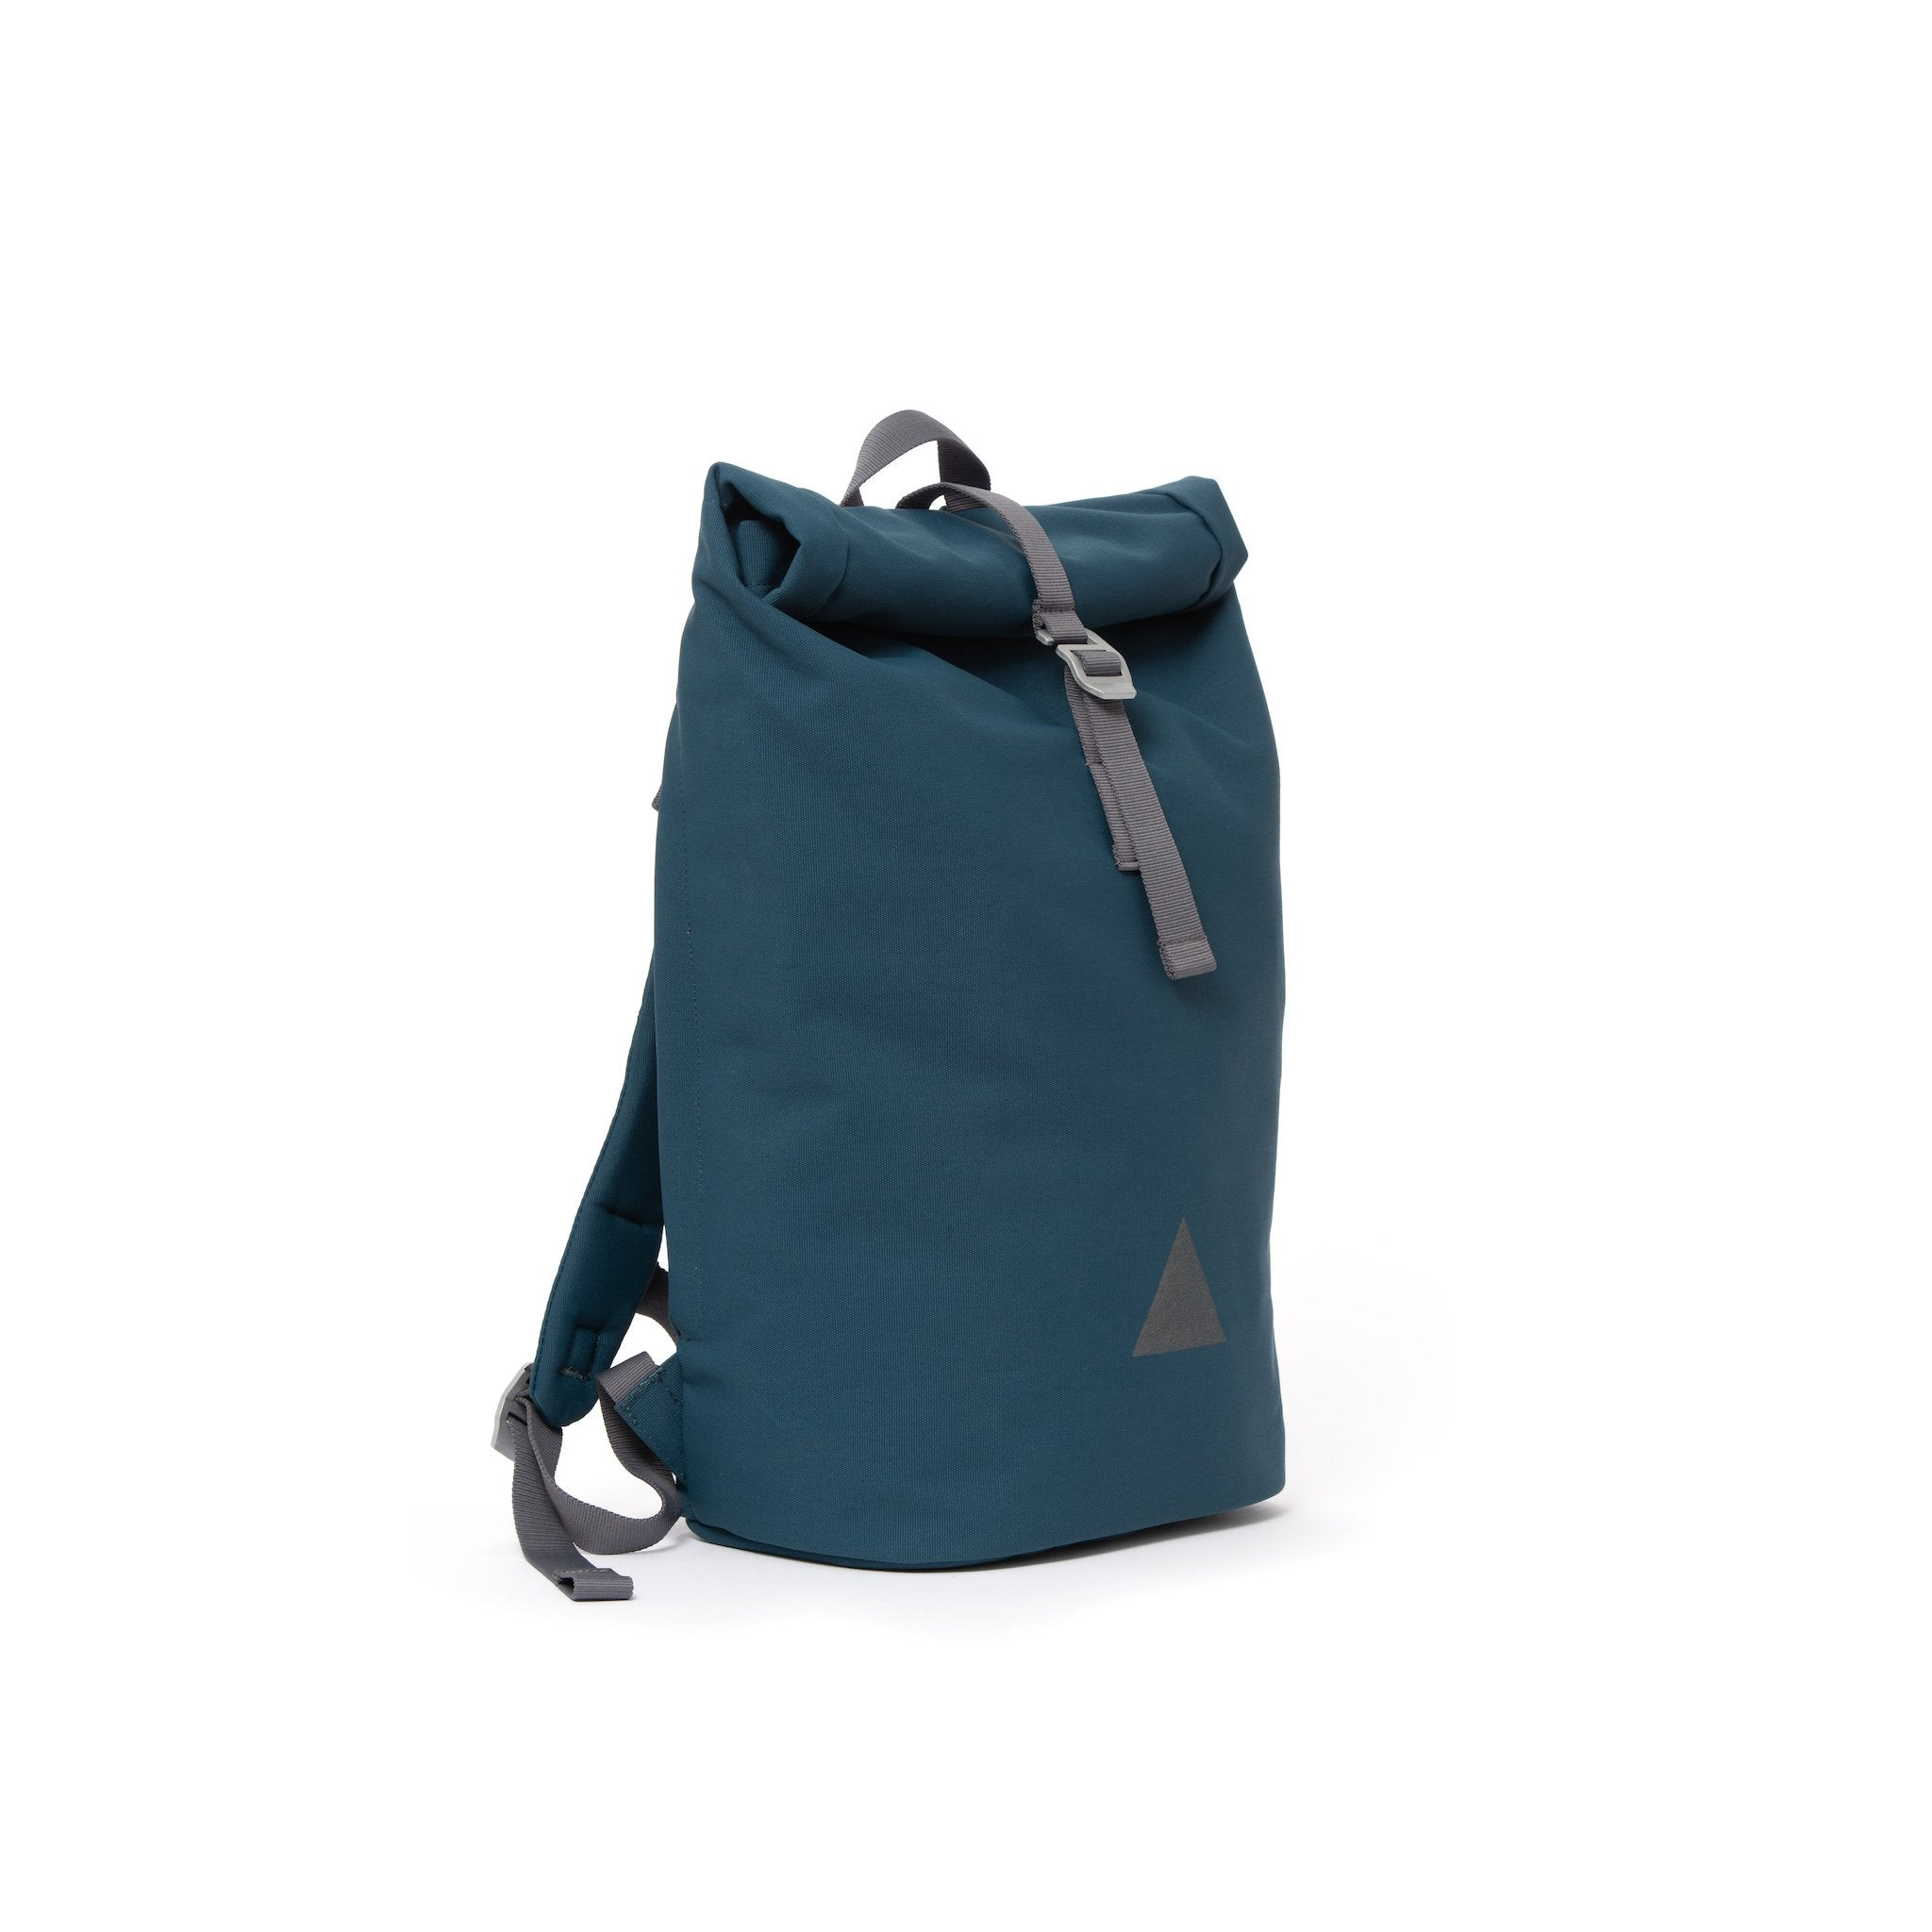 Blue recycled canvas men's rolltop backpack.